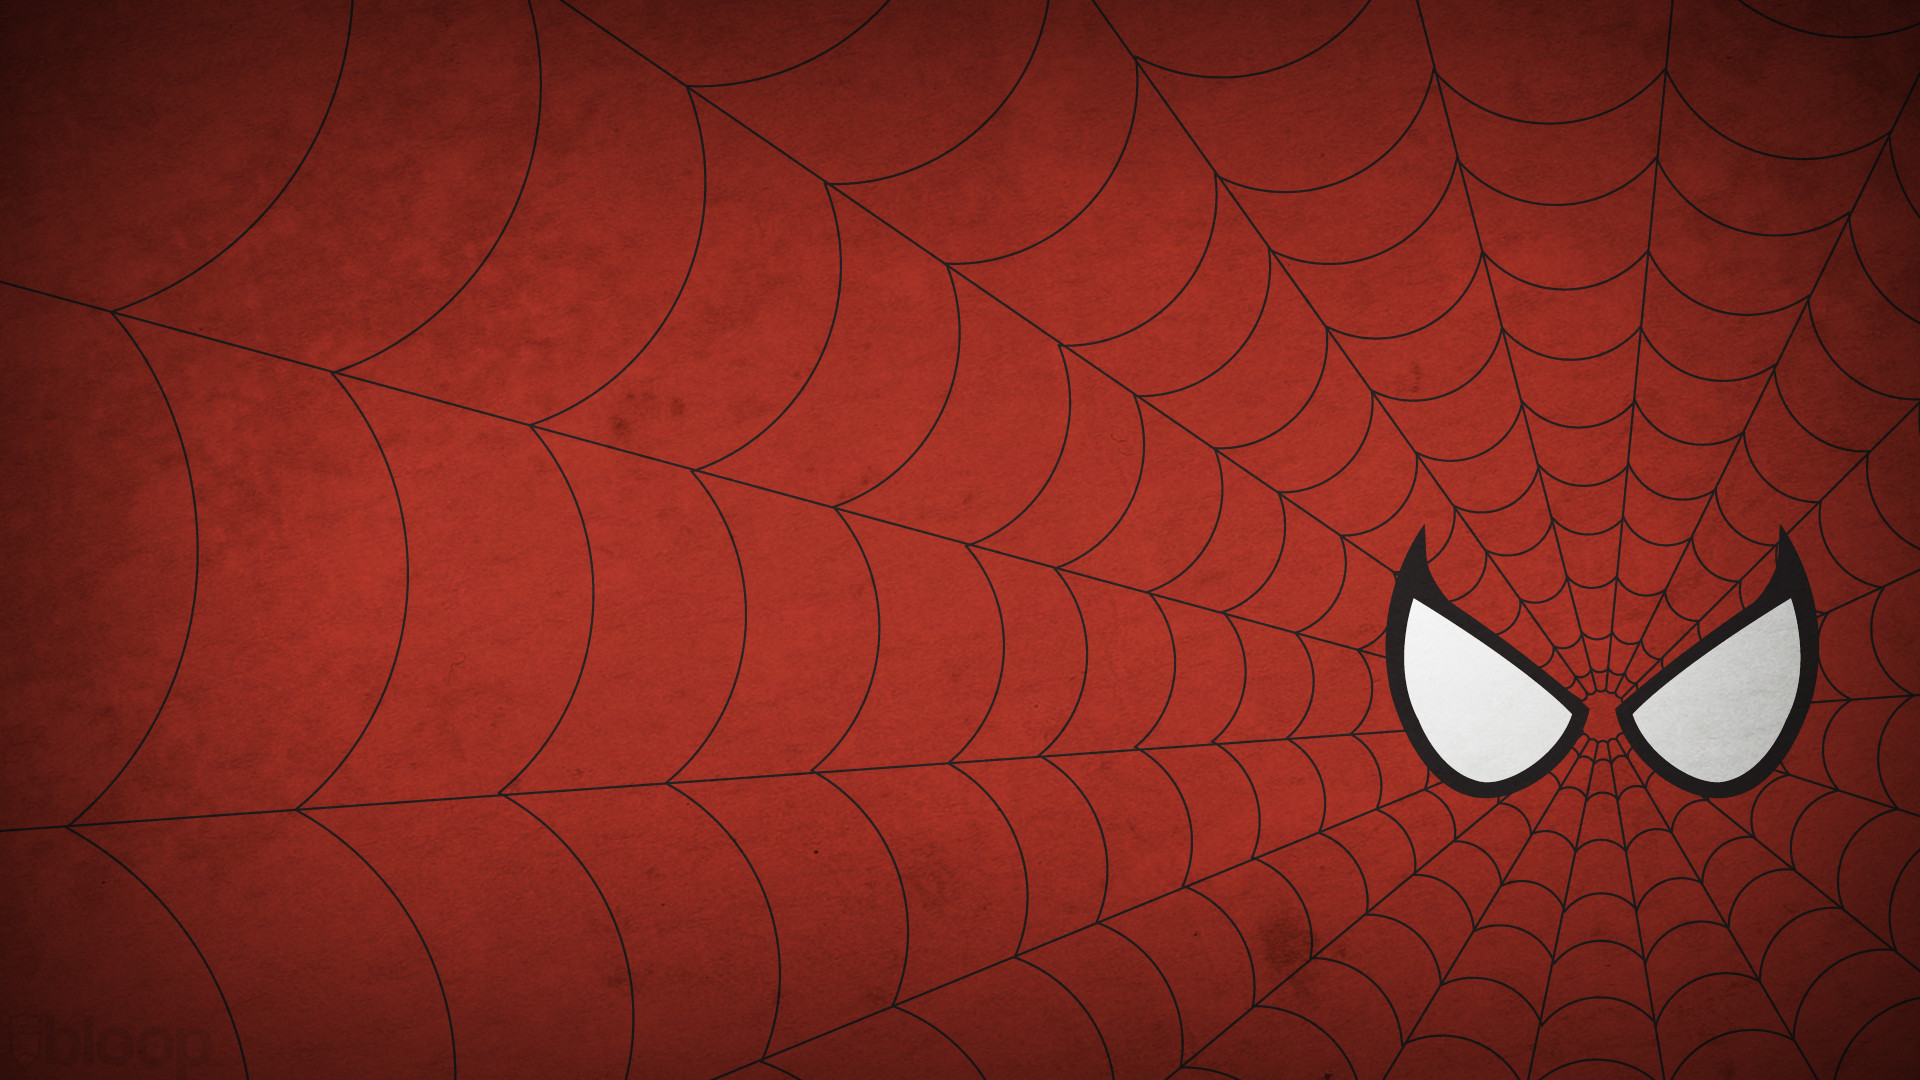 Spiderman Wallpaper Free Download